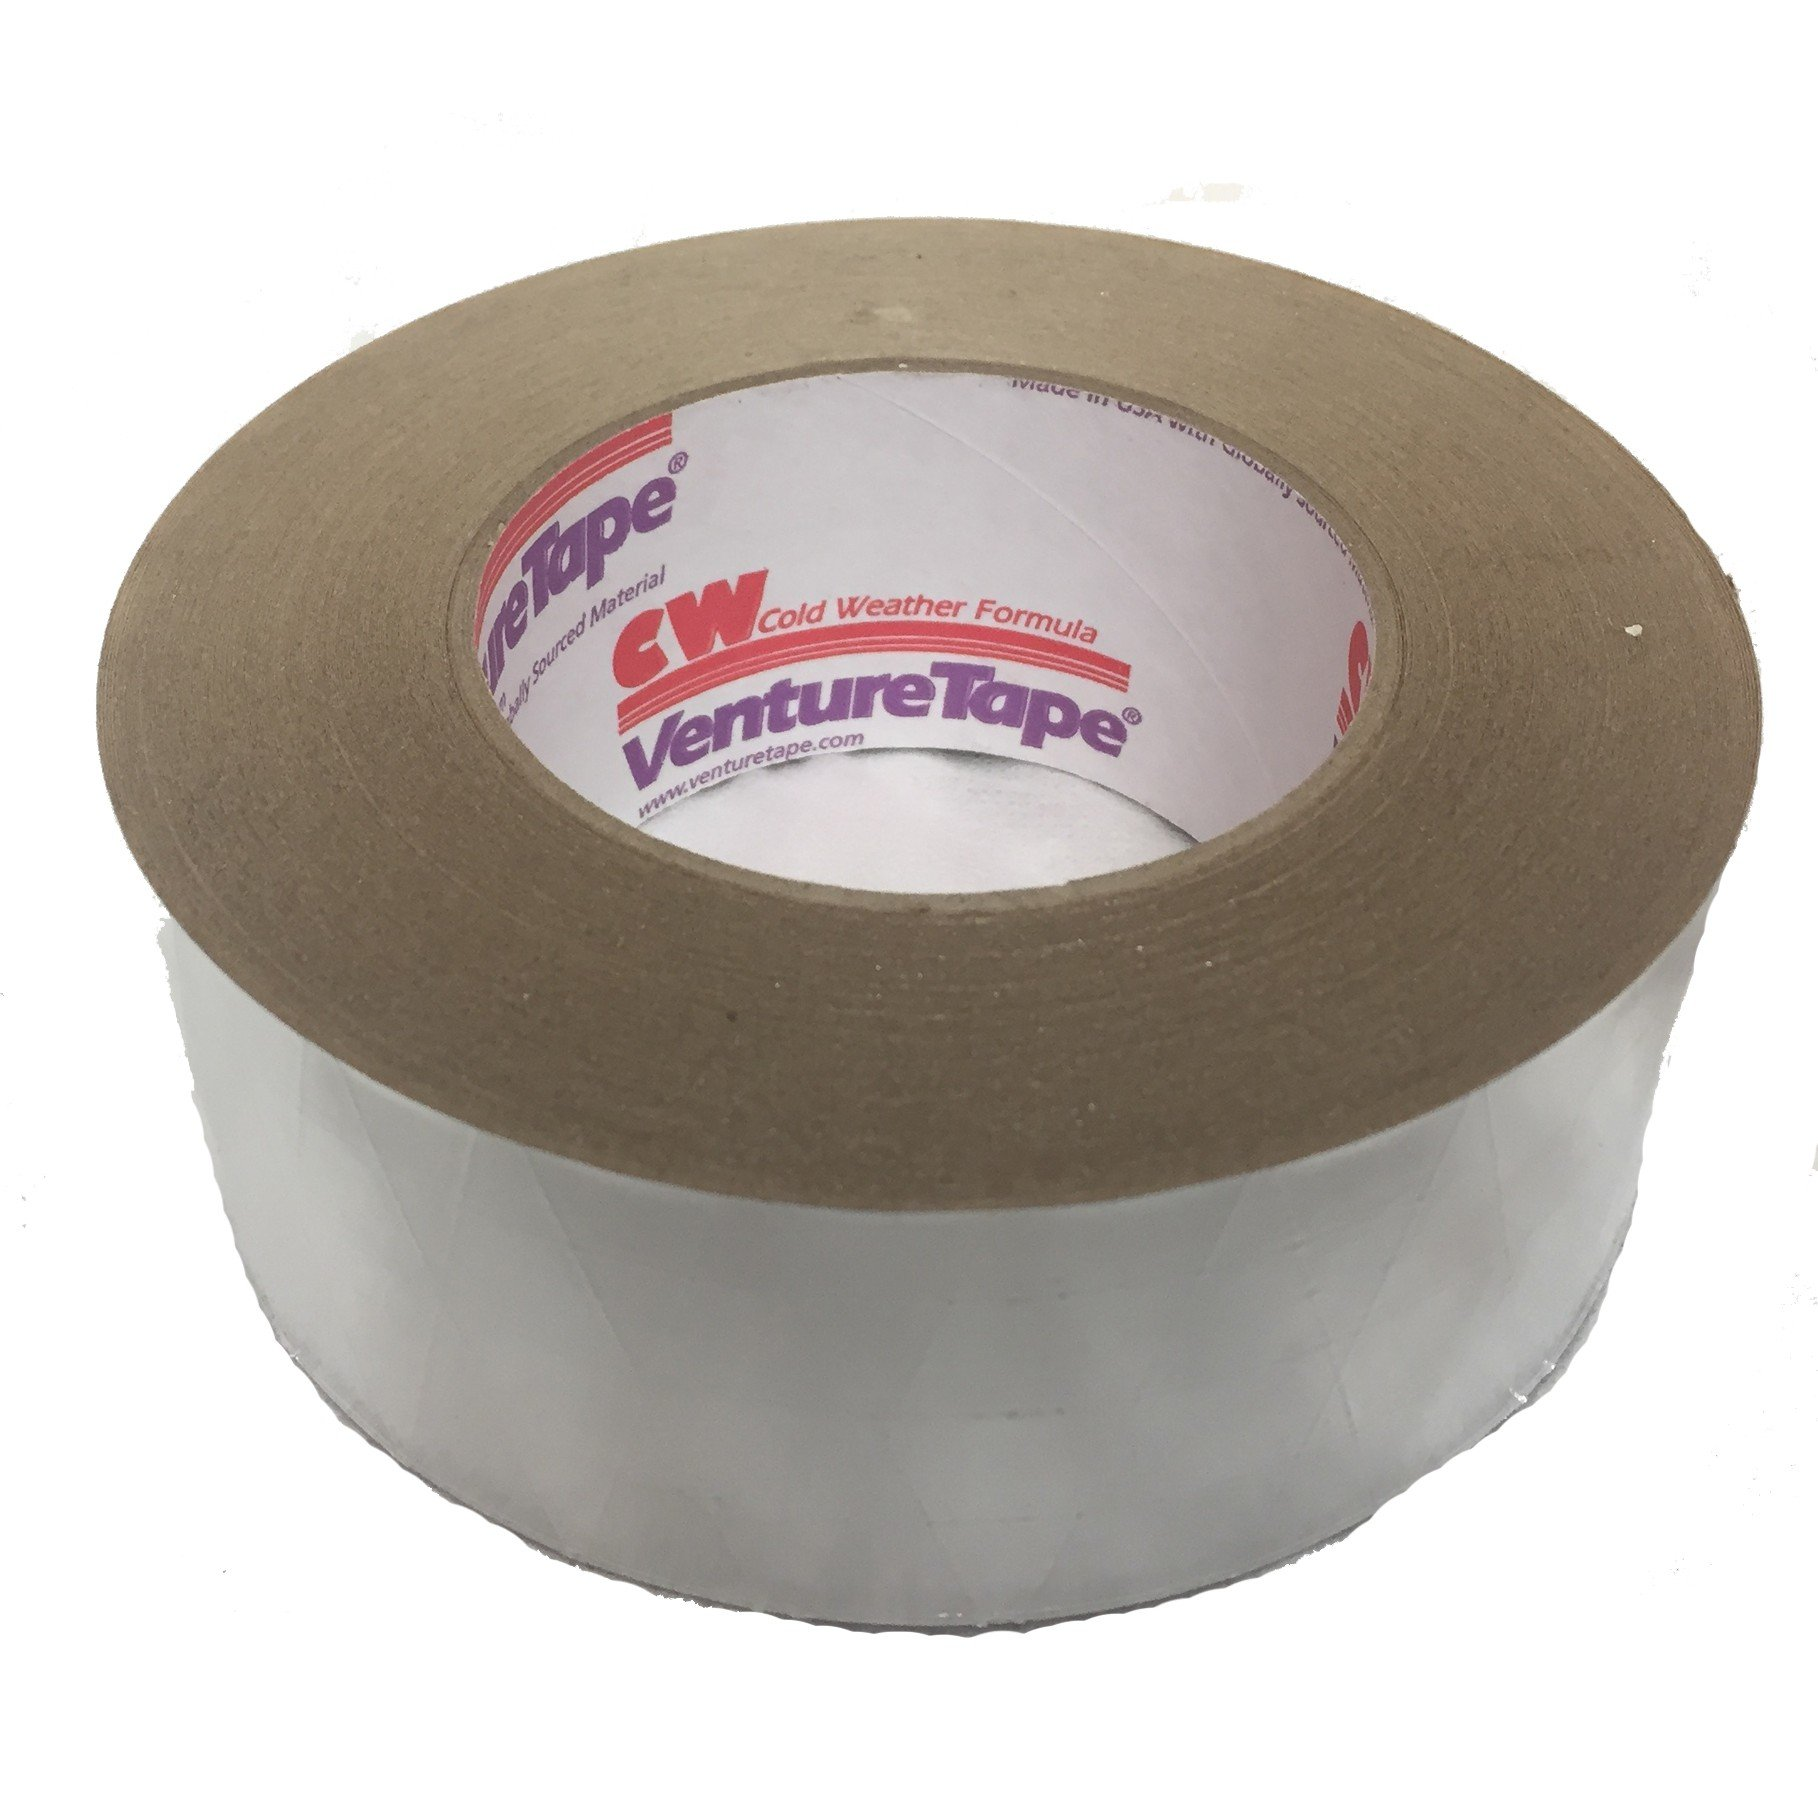 Venture Tape FSK Facing Tape 3 in x 150 ft - 1525CW.NT-N007